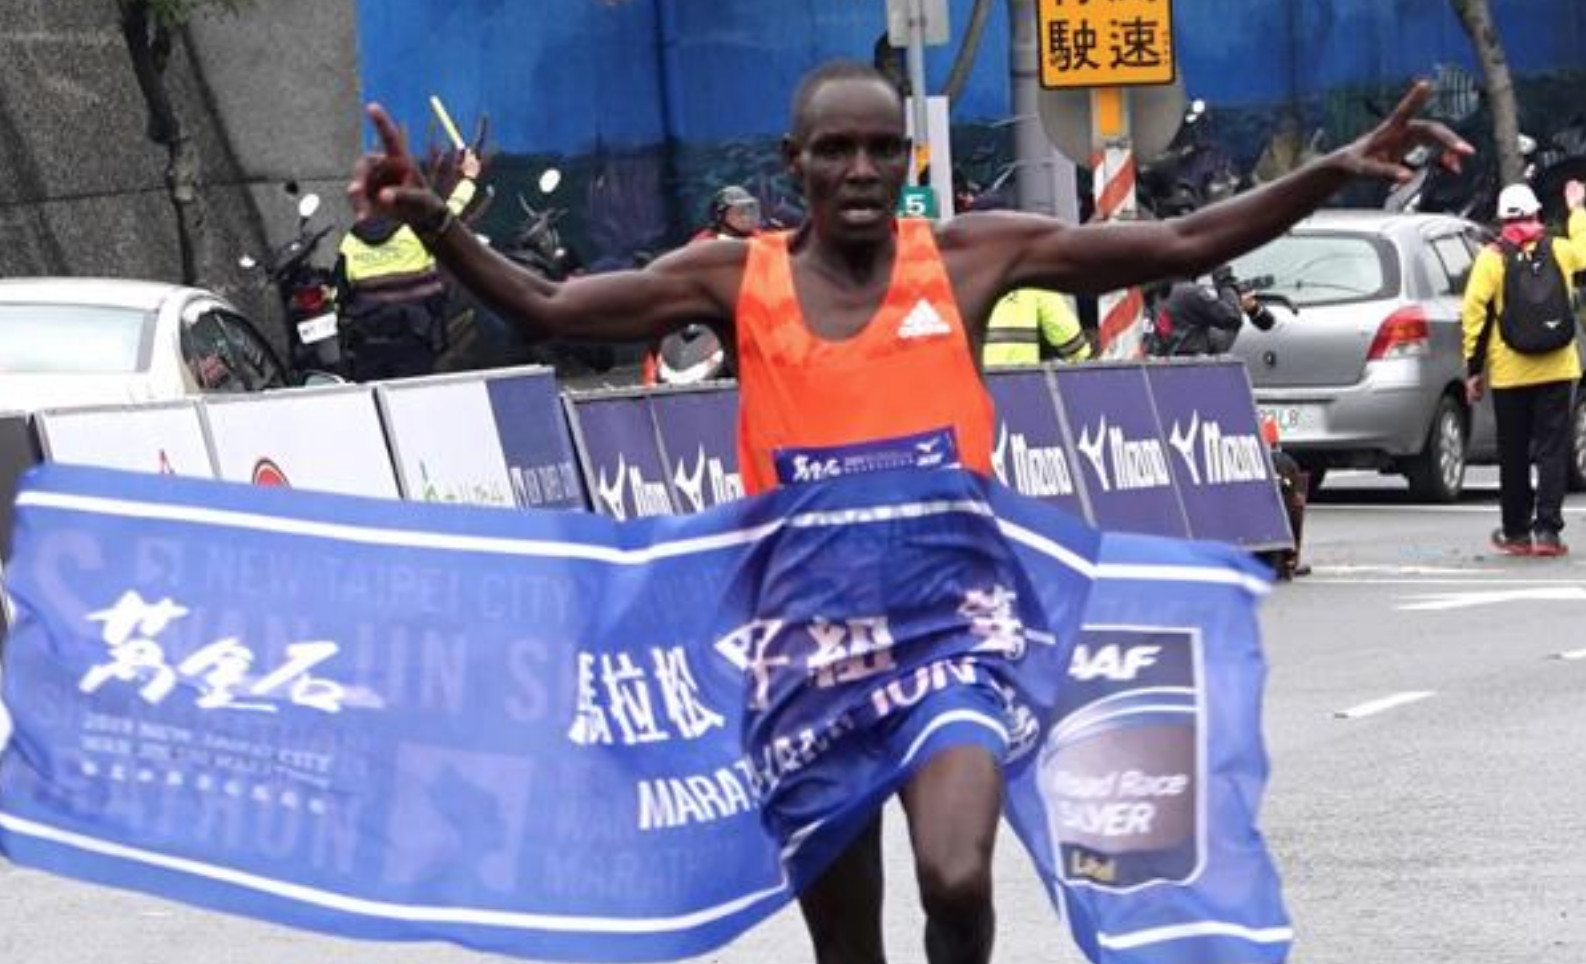 Kiplagat led four men under 2:07 at the Seoul Marathon